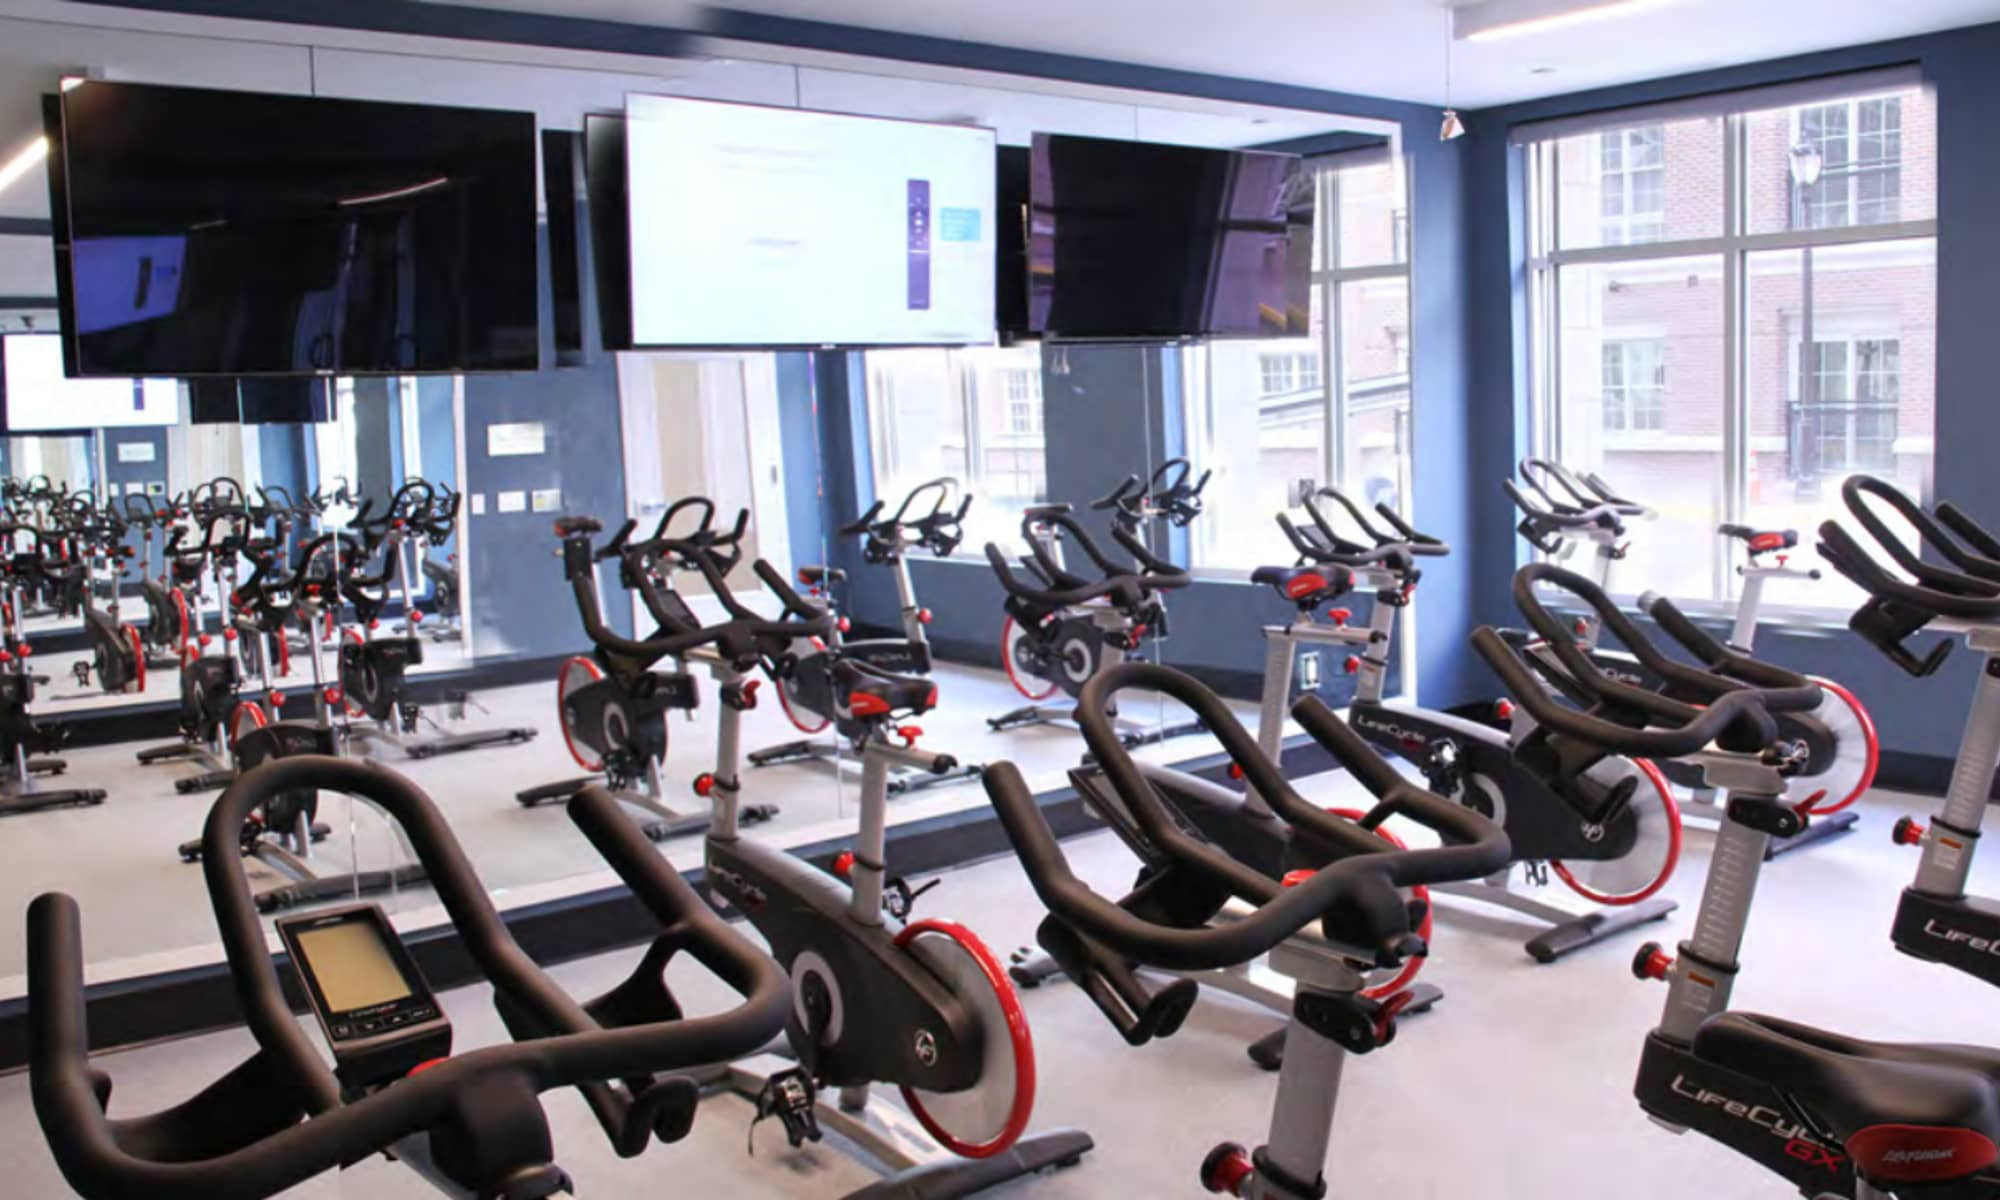 Our apartments in Secaucus, New Jersey showcase a renovated fitness center